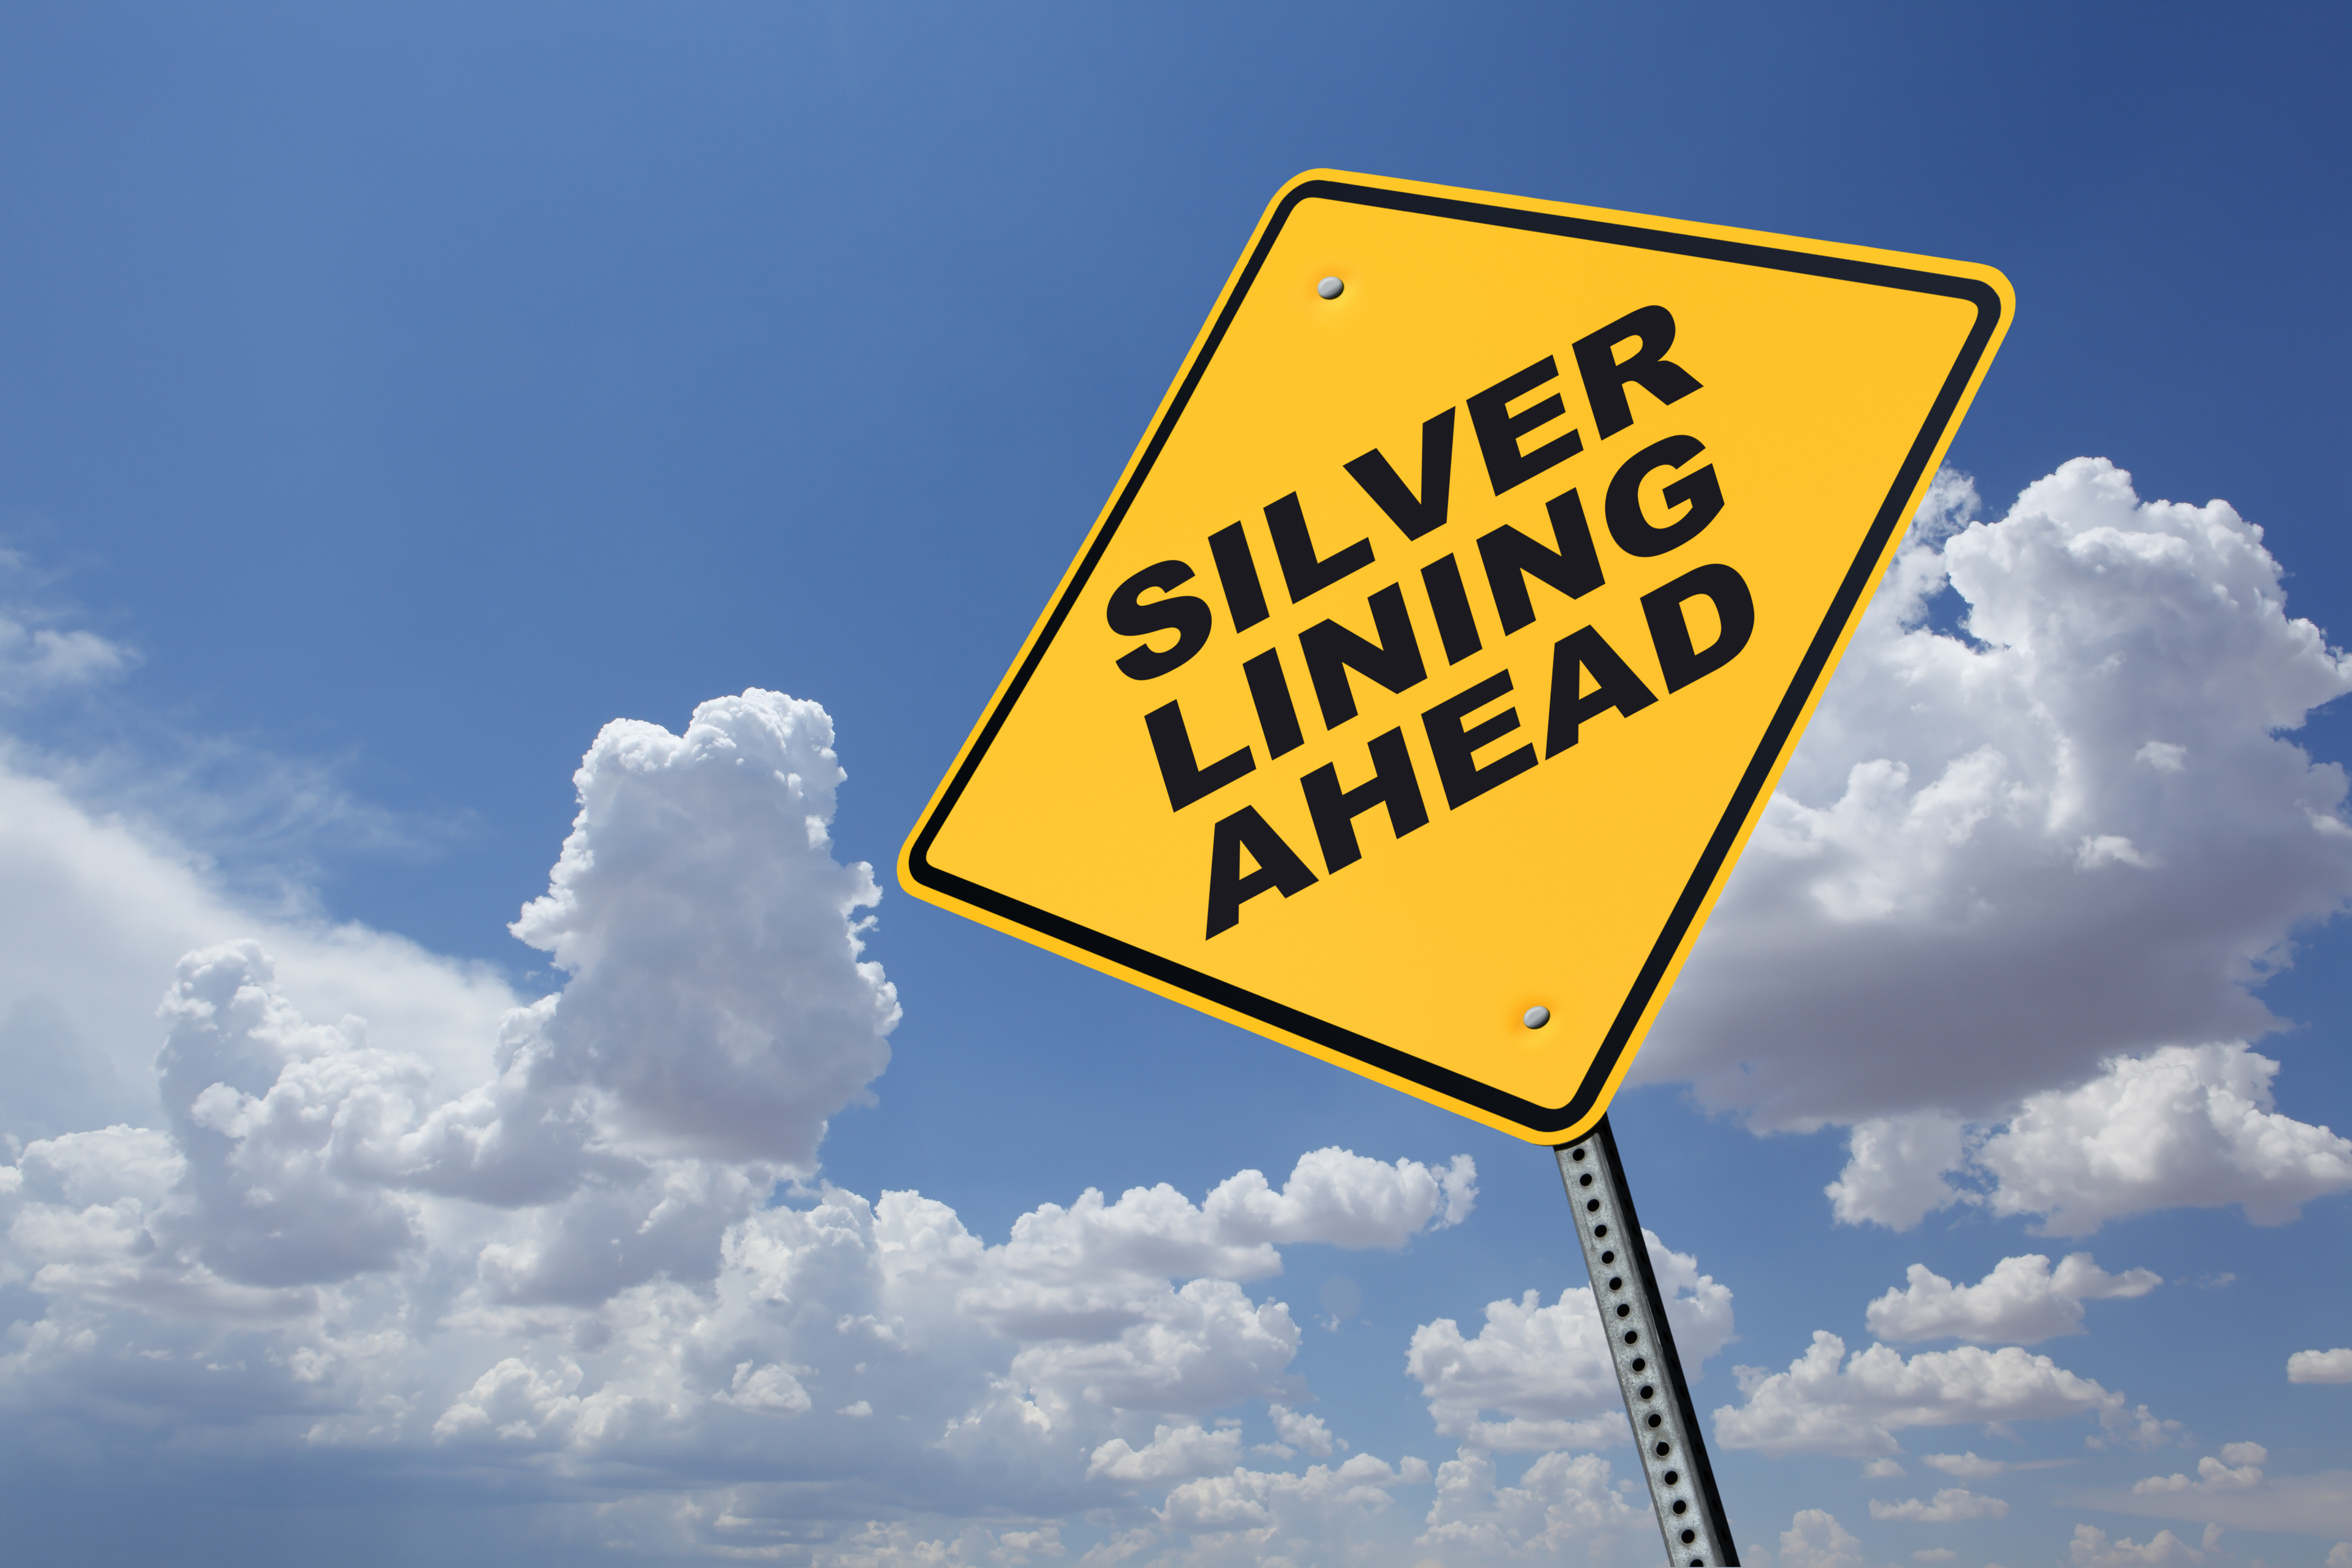 Silver linings: finding the good in the midst of a pandemic